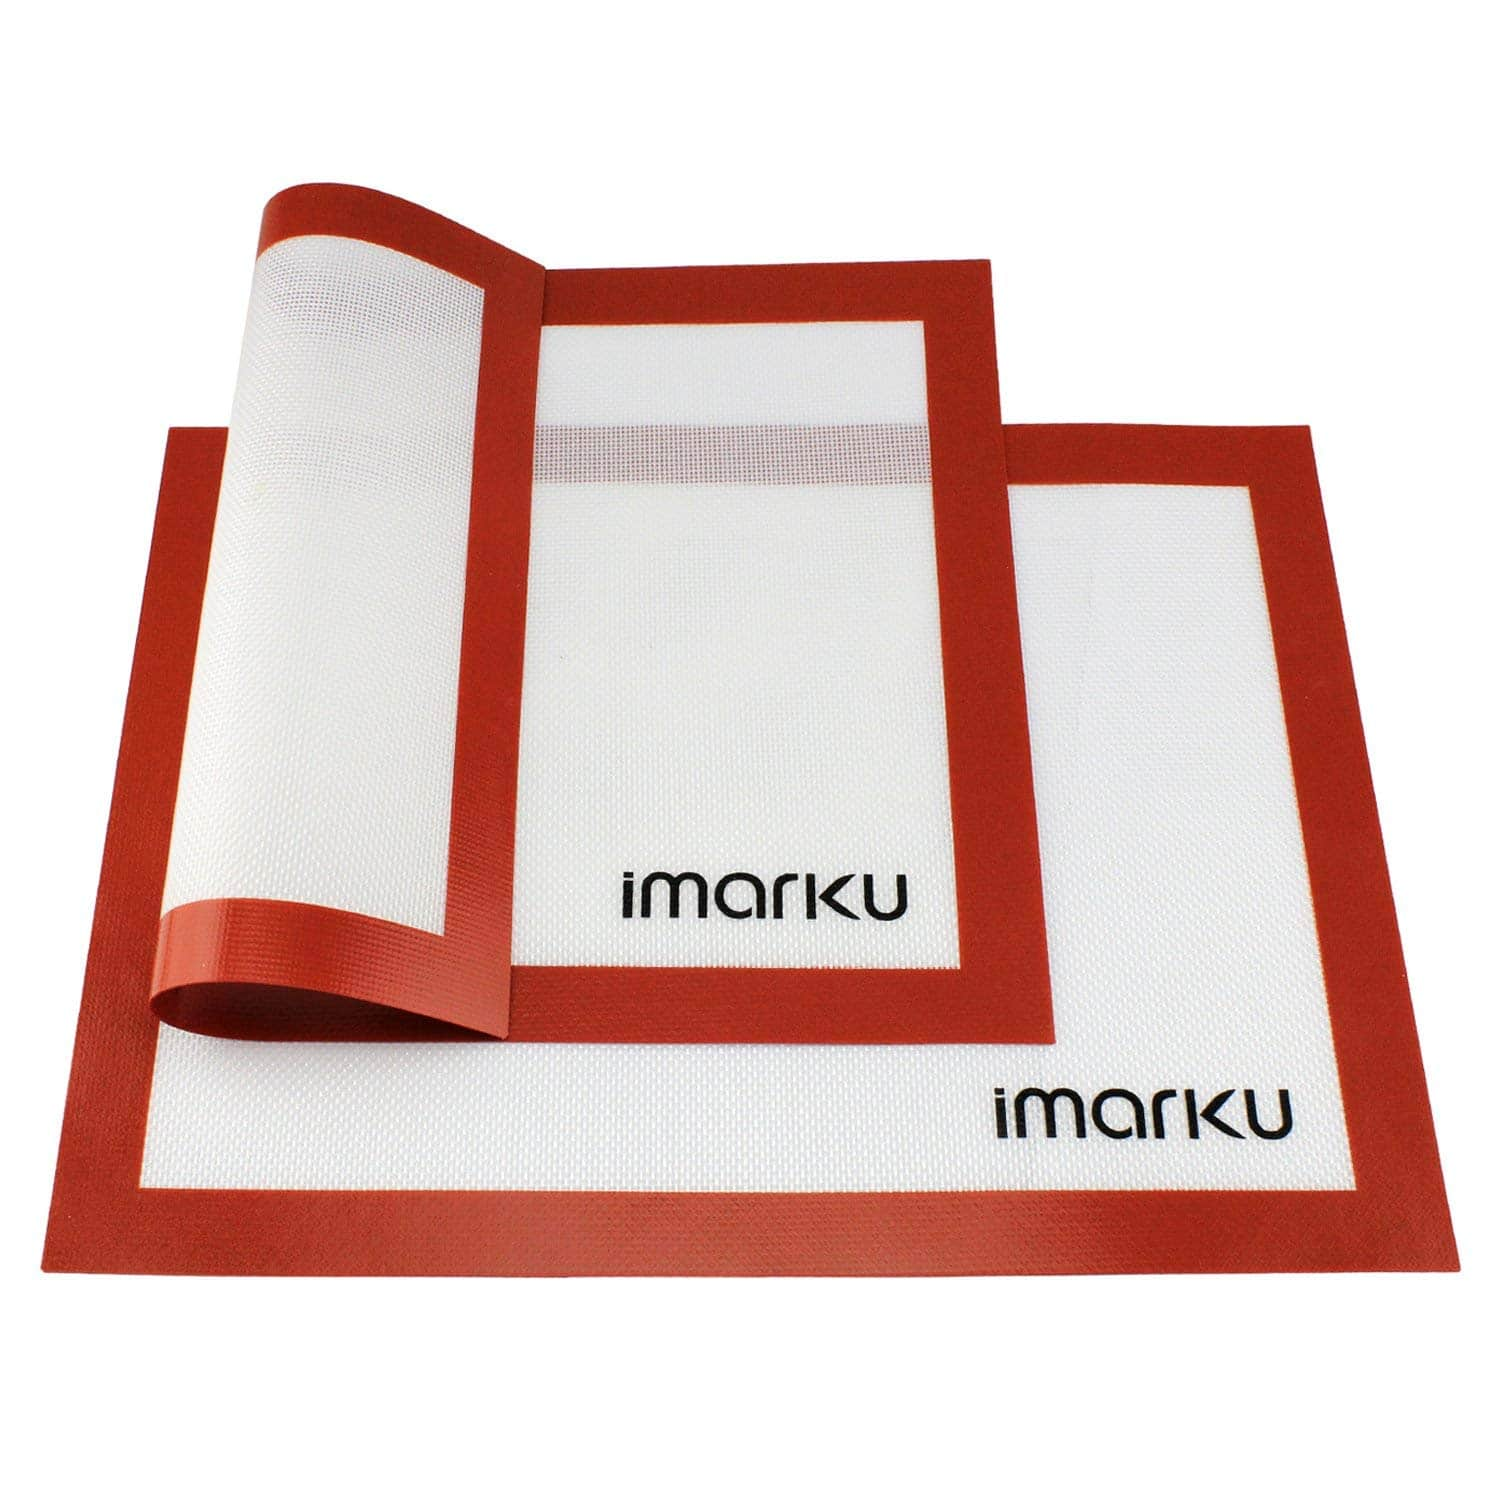 iMarku Silicone Baking Mat Set of 2 ,Non-Stick,Heat Resistant, and